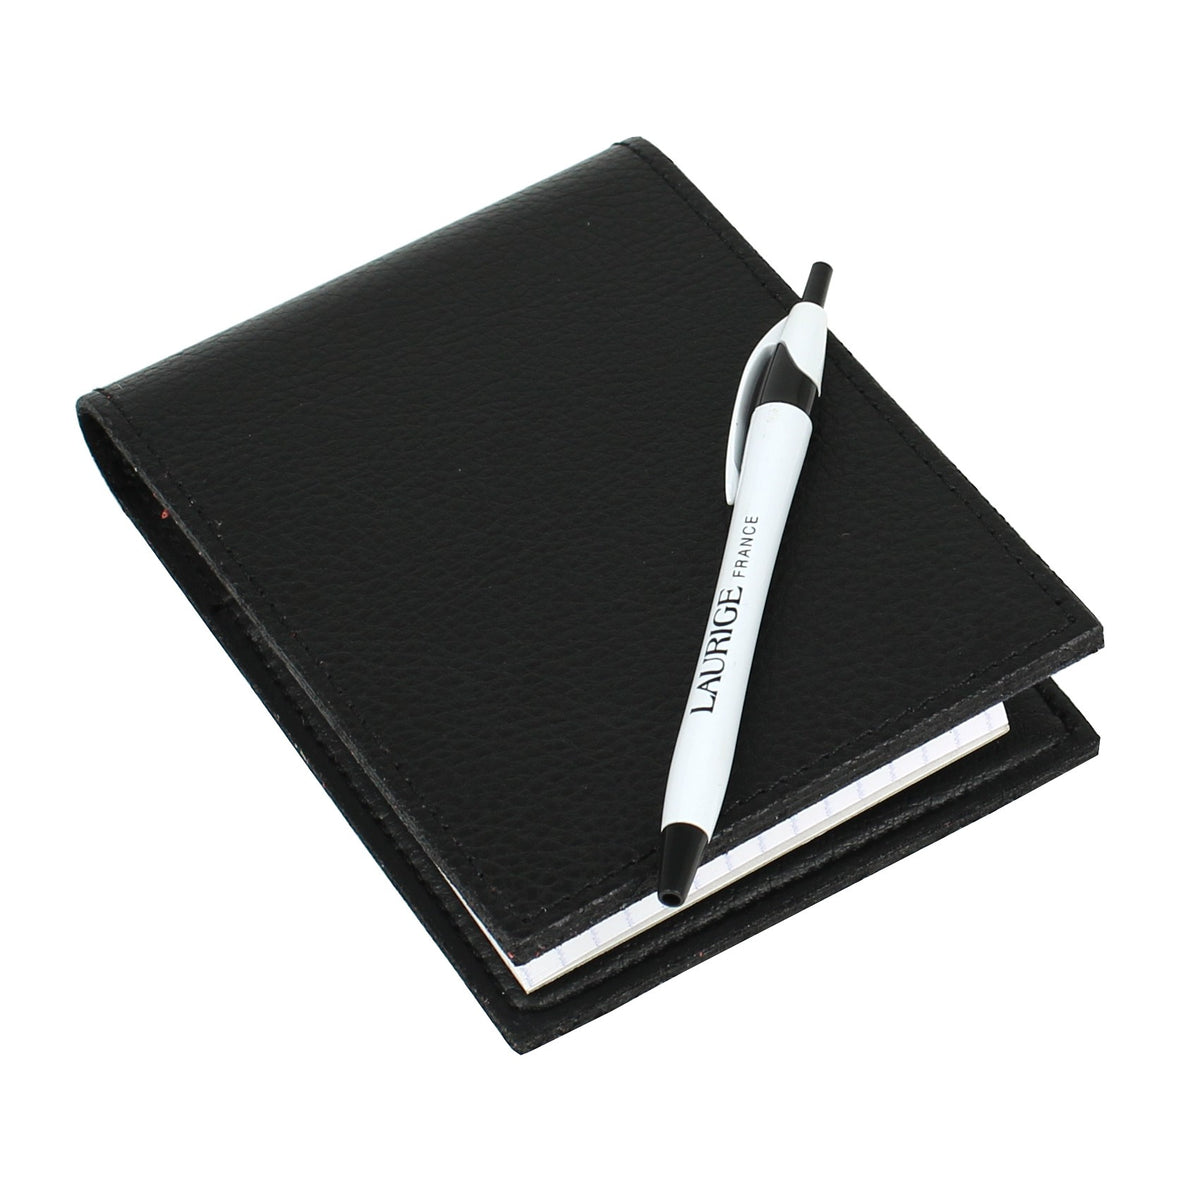 Carnet de notes A5 en cuir personnalisable